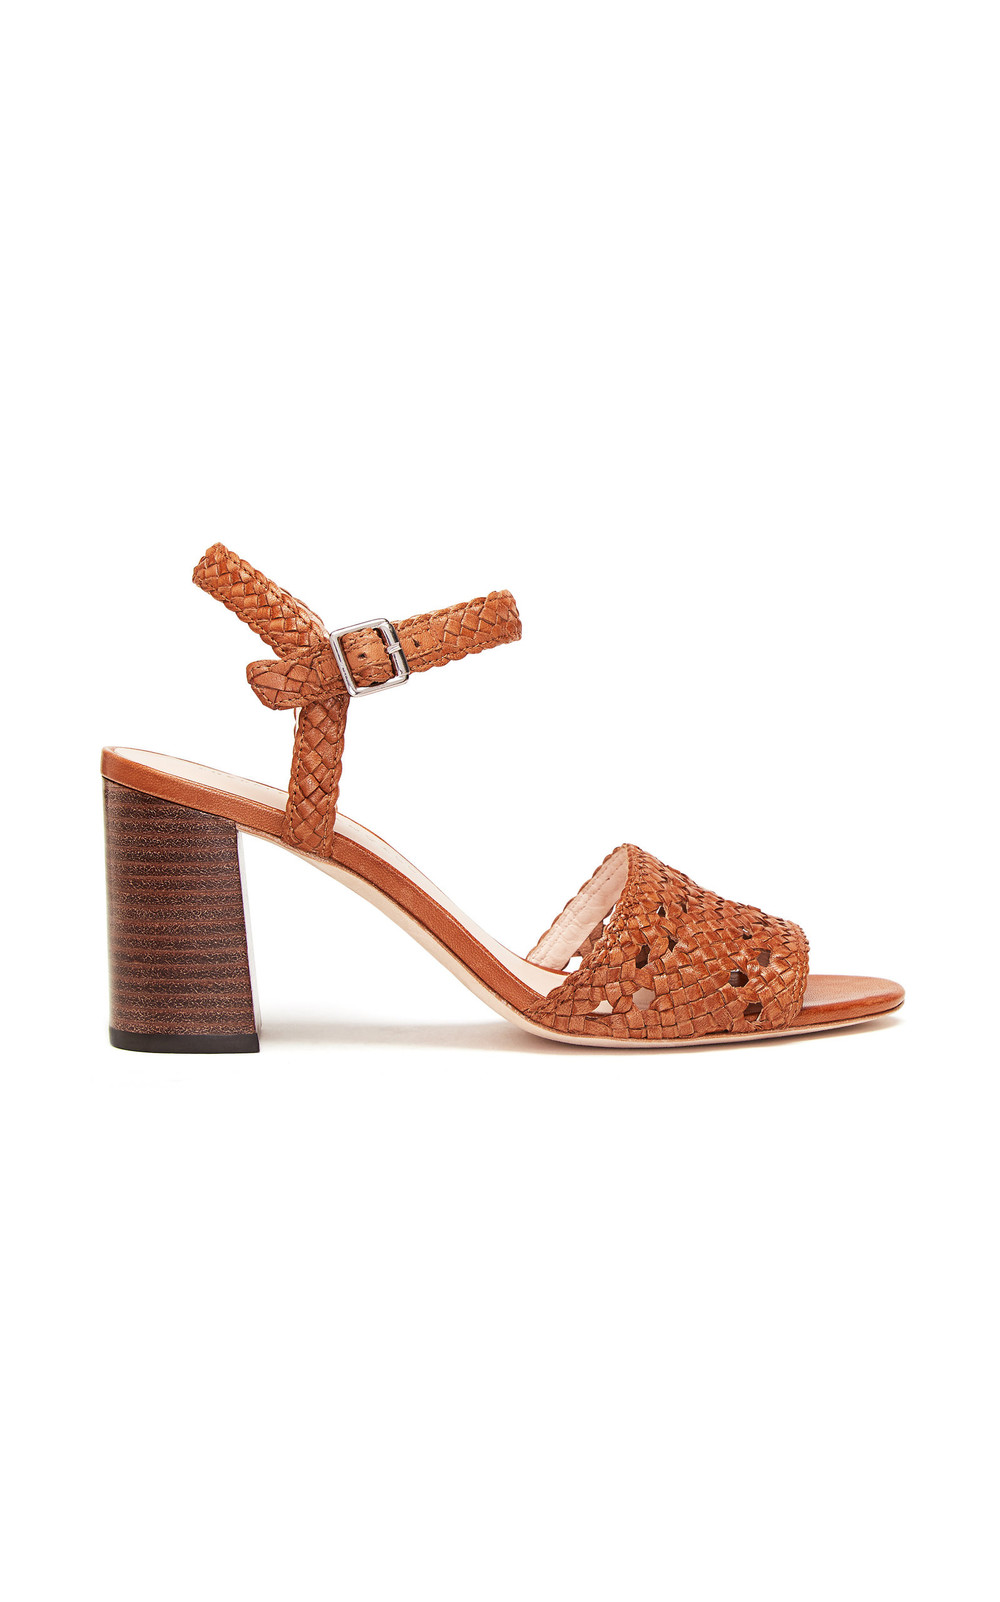 Loeffler Randall Liana Woven Leather Sandals in brown